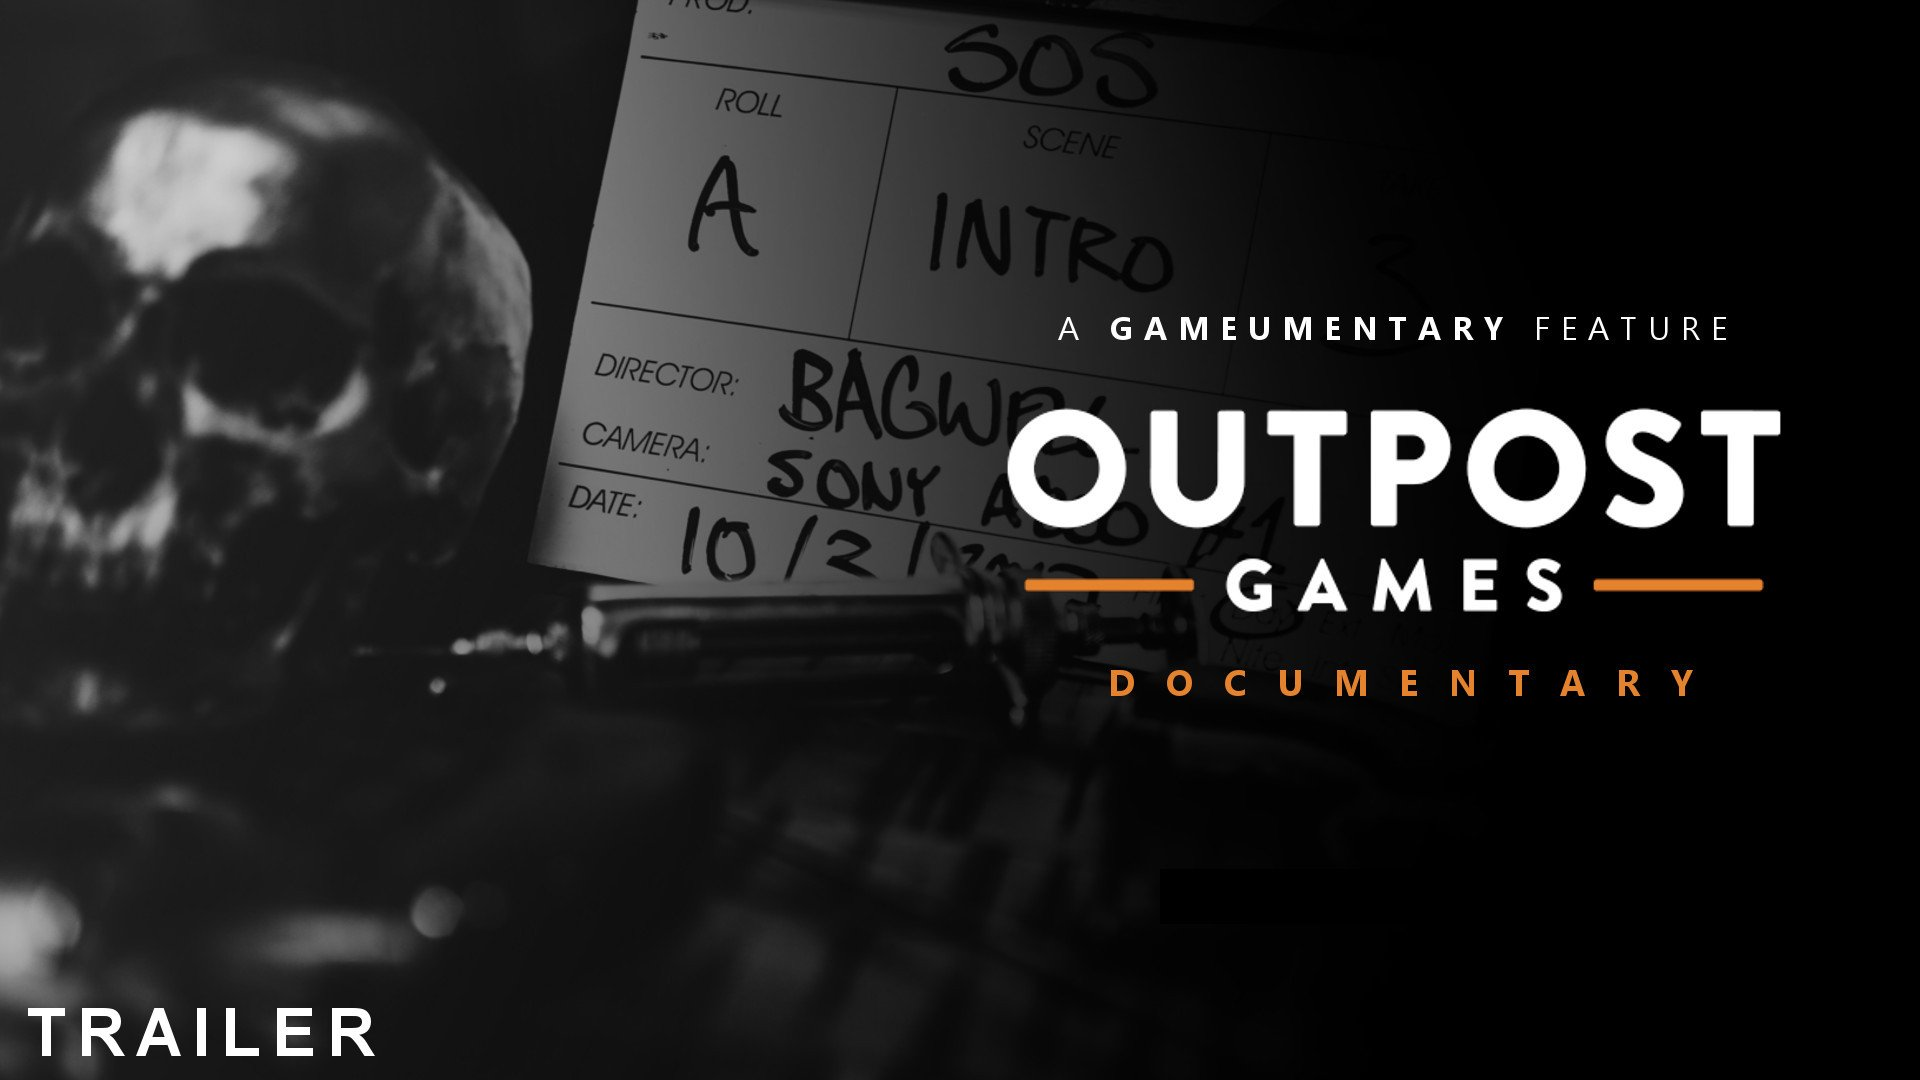 We explore the story of Outpost Games & SOS in Gameumentary's next documentary screenshot